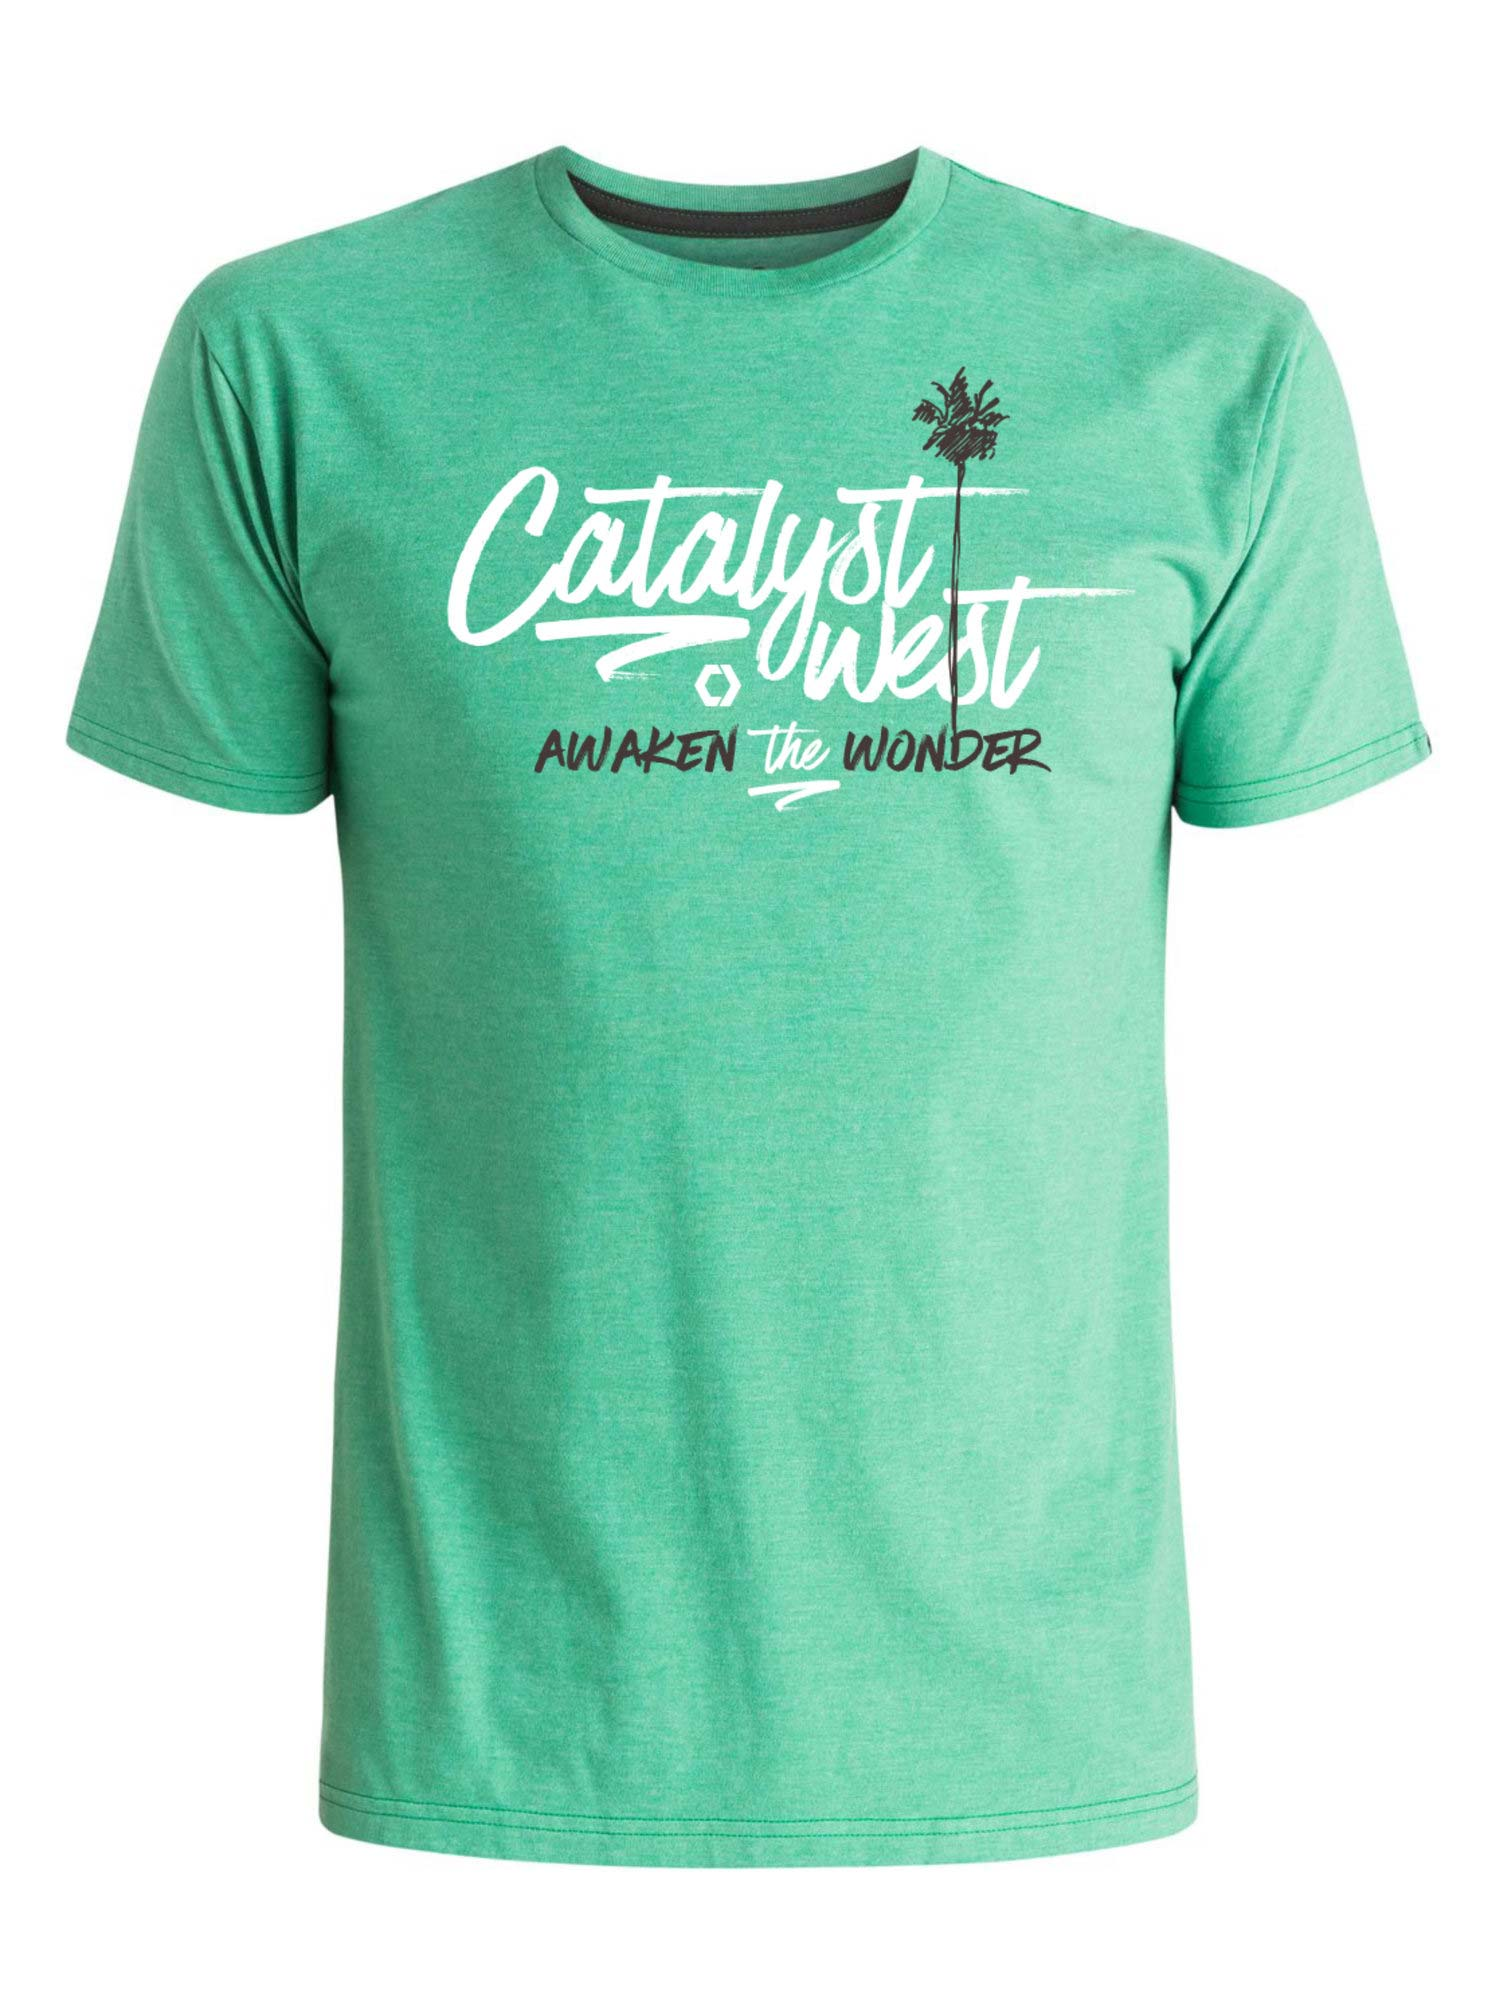 Apparel Design | Catalyst West T-Shirt